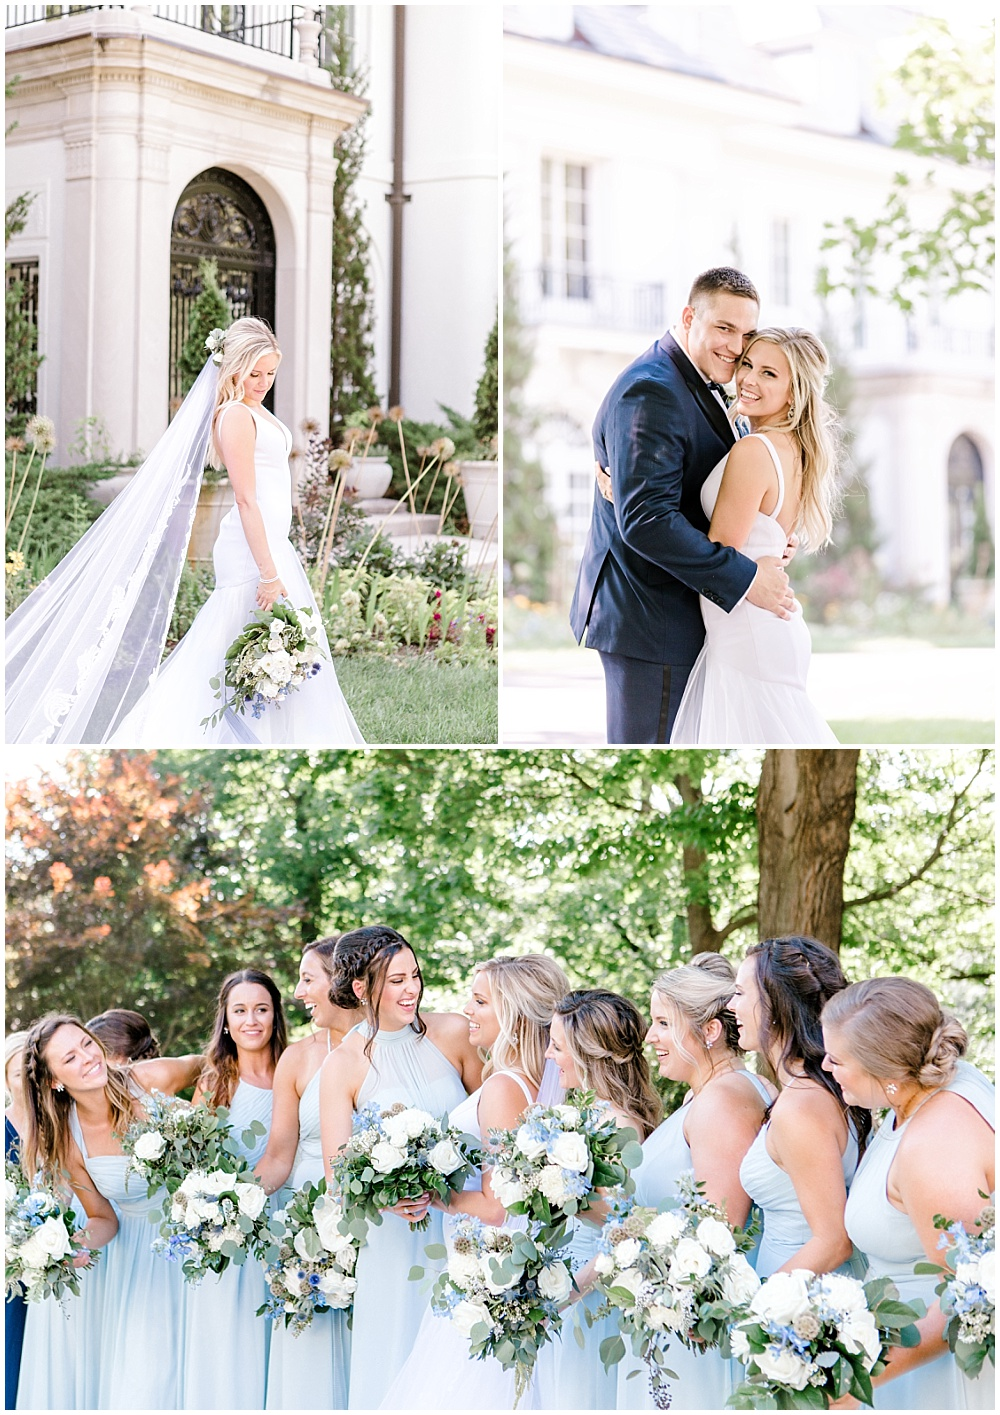 Bride and groom garden portraits; soft blue bridesmaid dresses with green and white bouquets | NFL Player Nick Martin's rustic chic summer wedding at the Biltwell Event Center